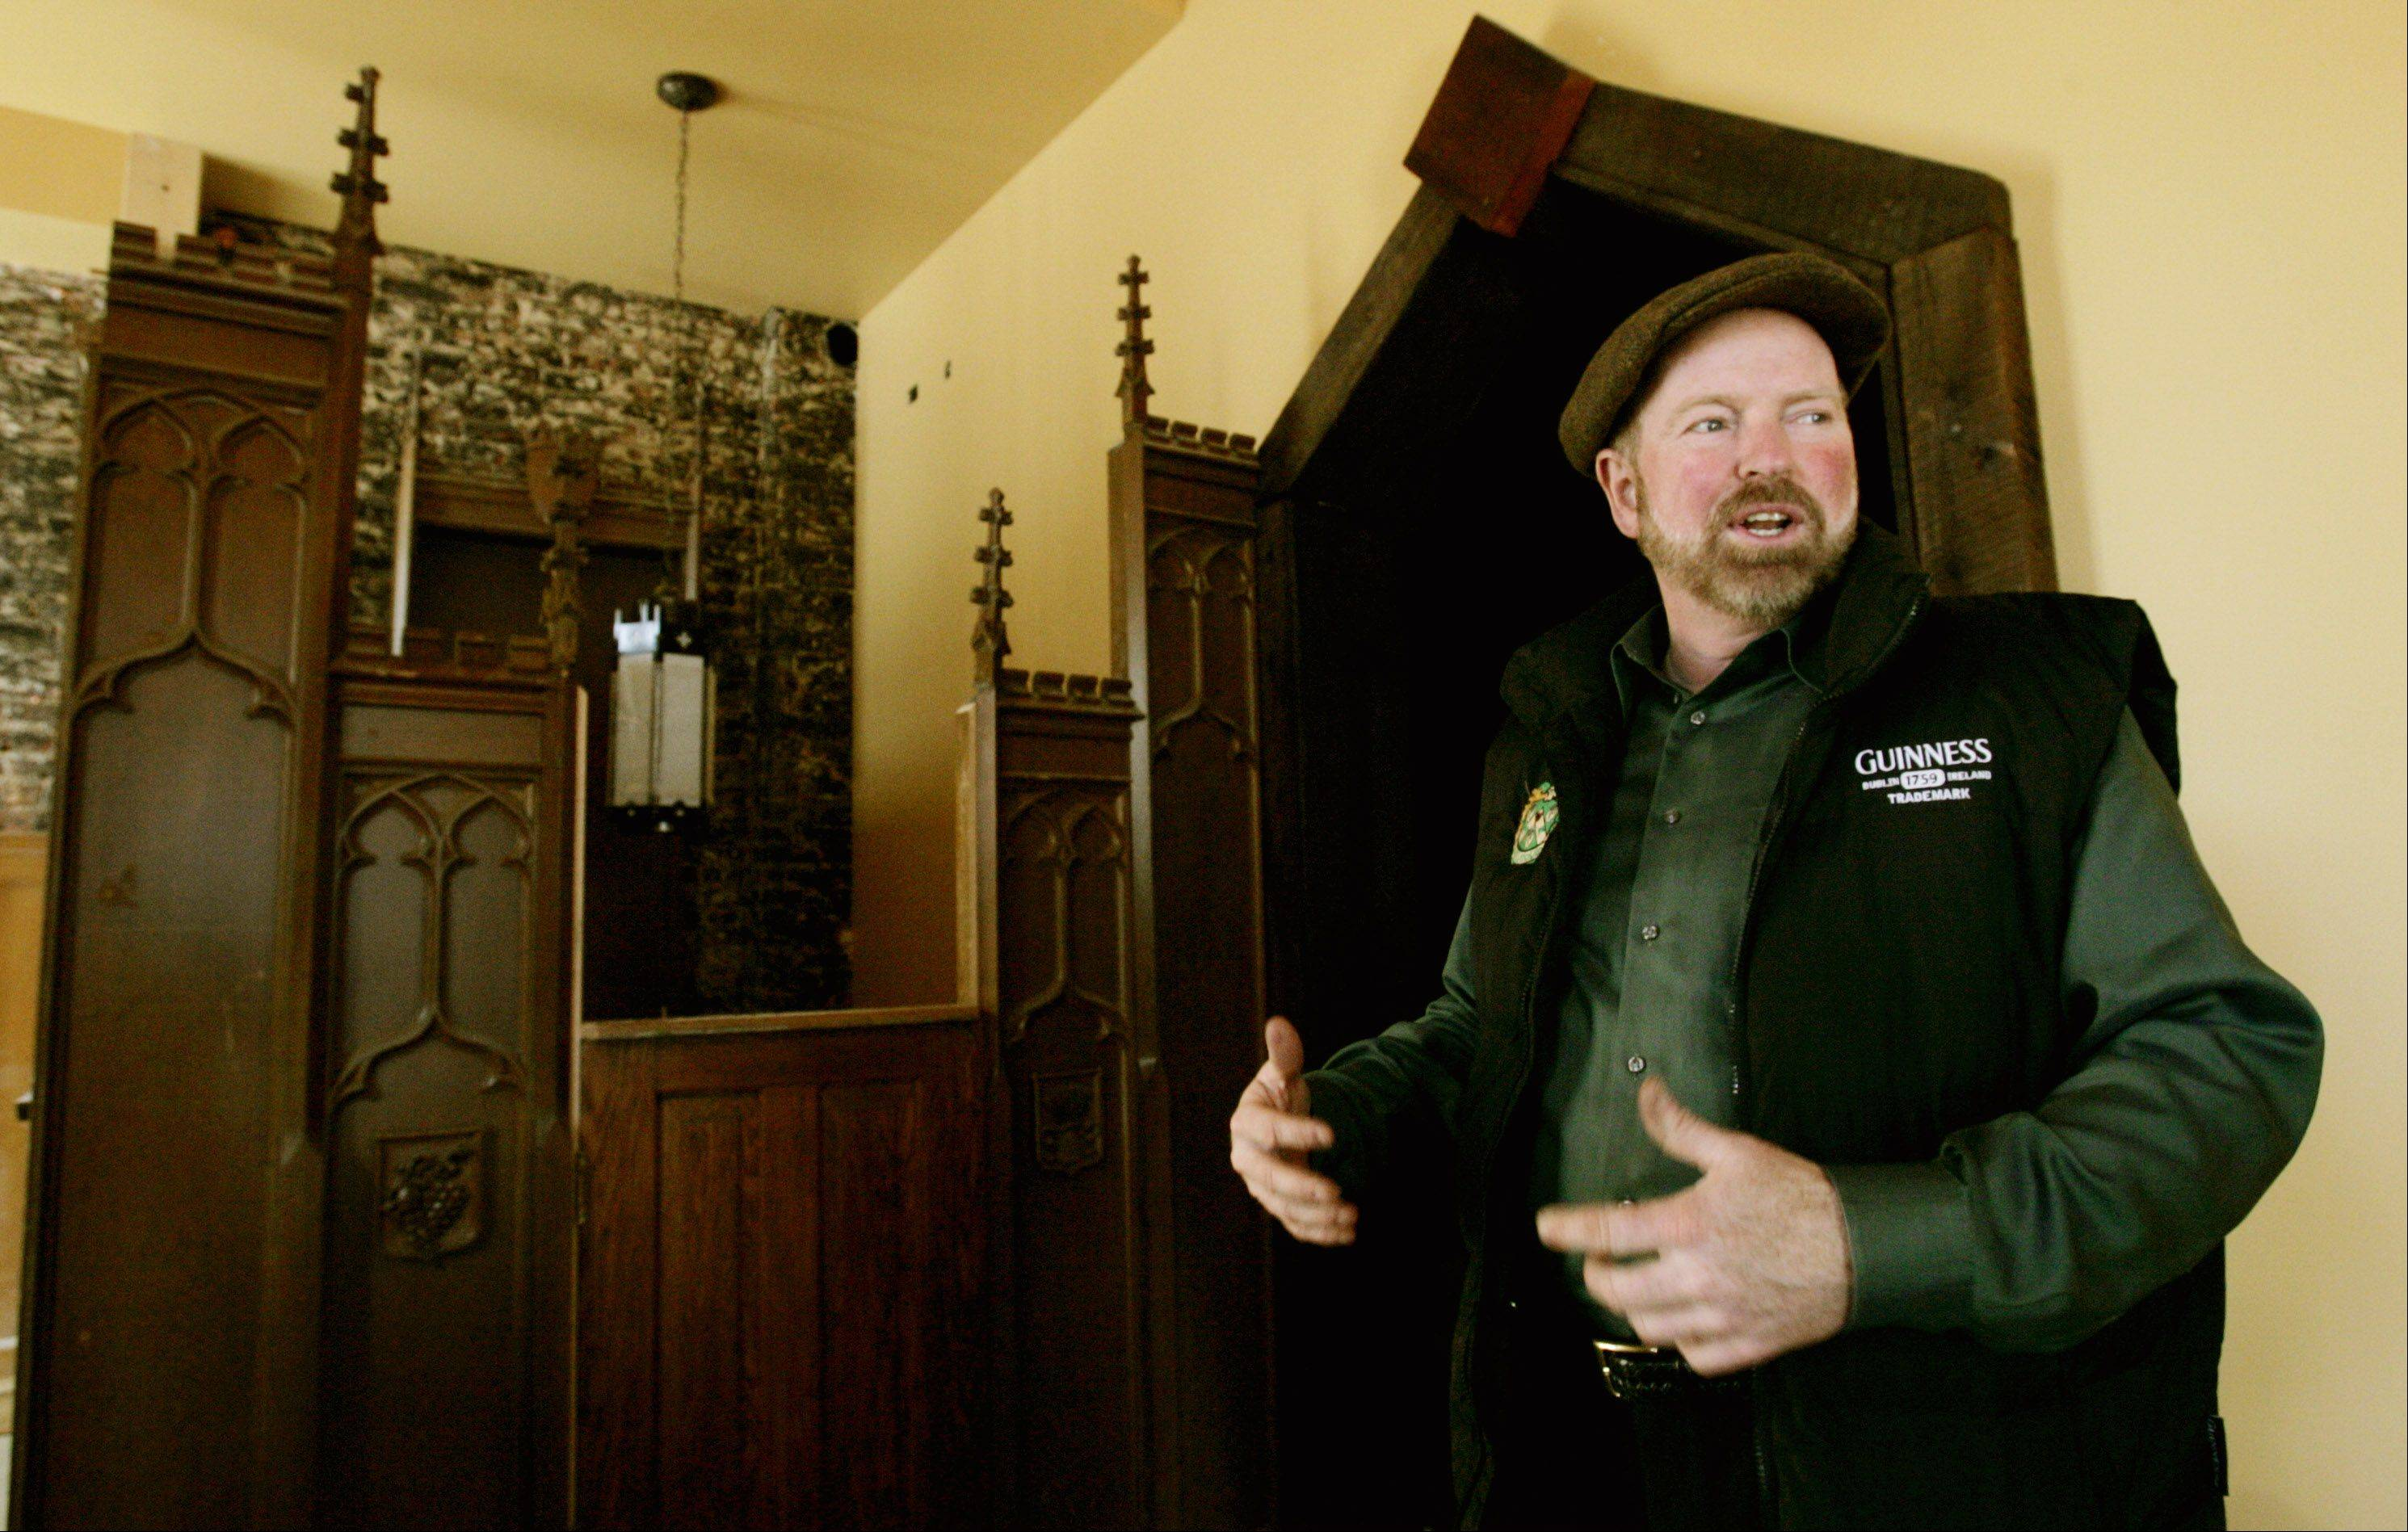 Phil Cullen, owner of Ballydoyle Irish Pub & Restaurant, is looking to expand the Ballydoyle franchise into downtown Naperville.